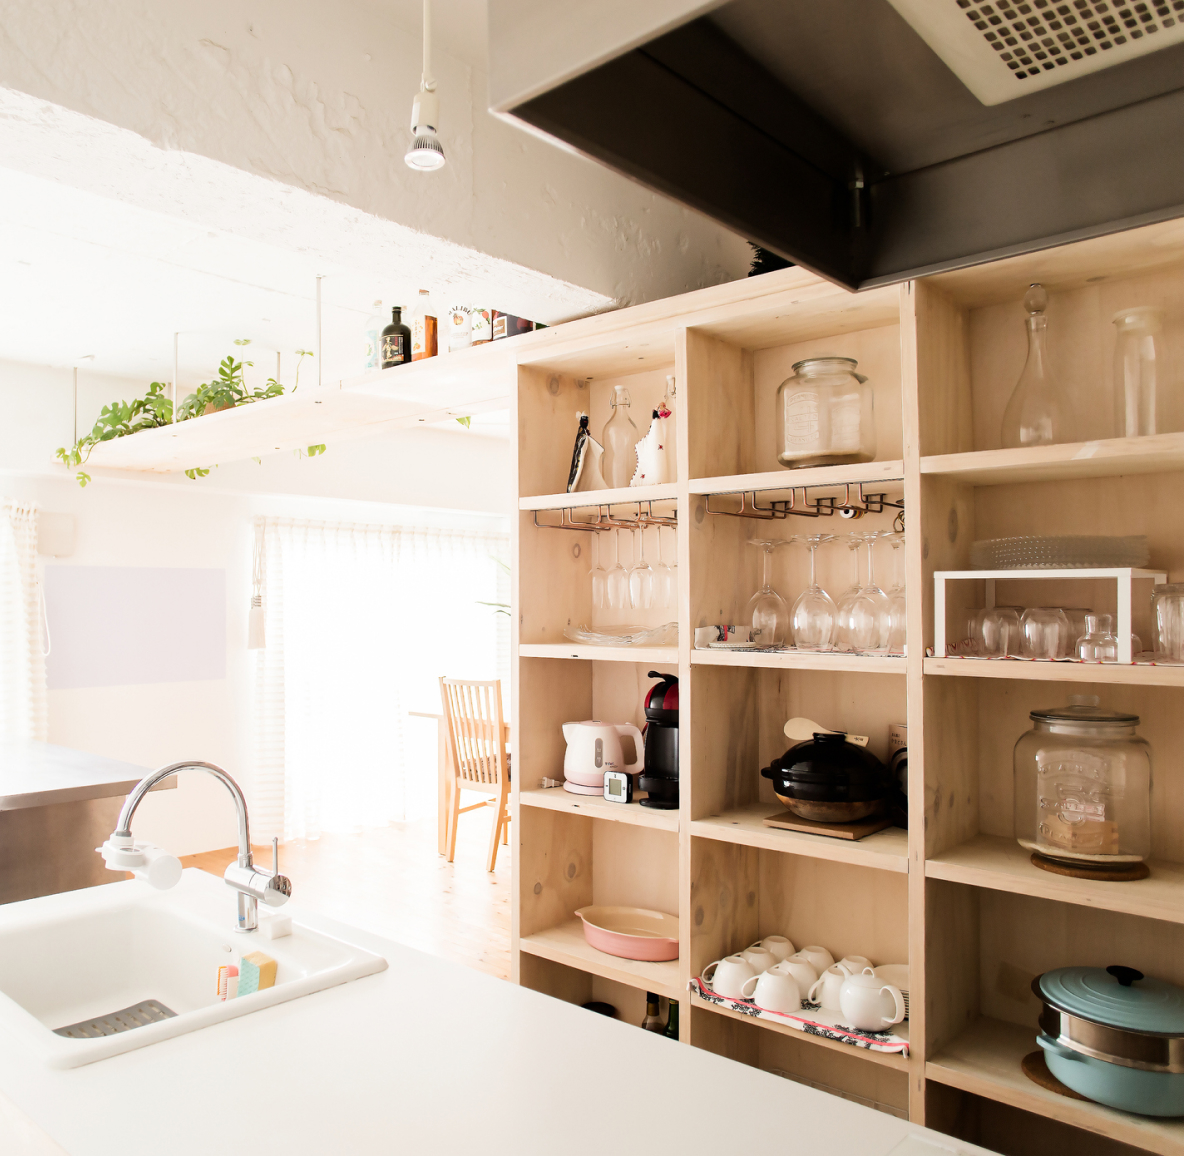 A wall of wood shelves in a brightly lit kitchen